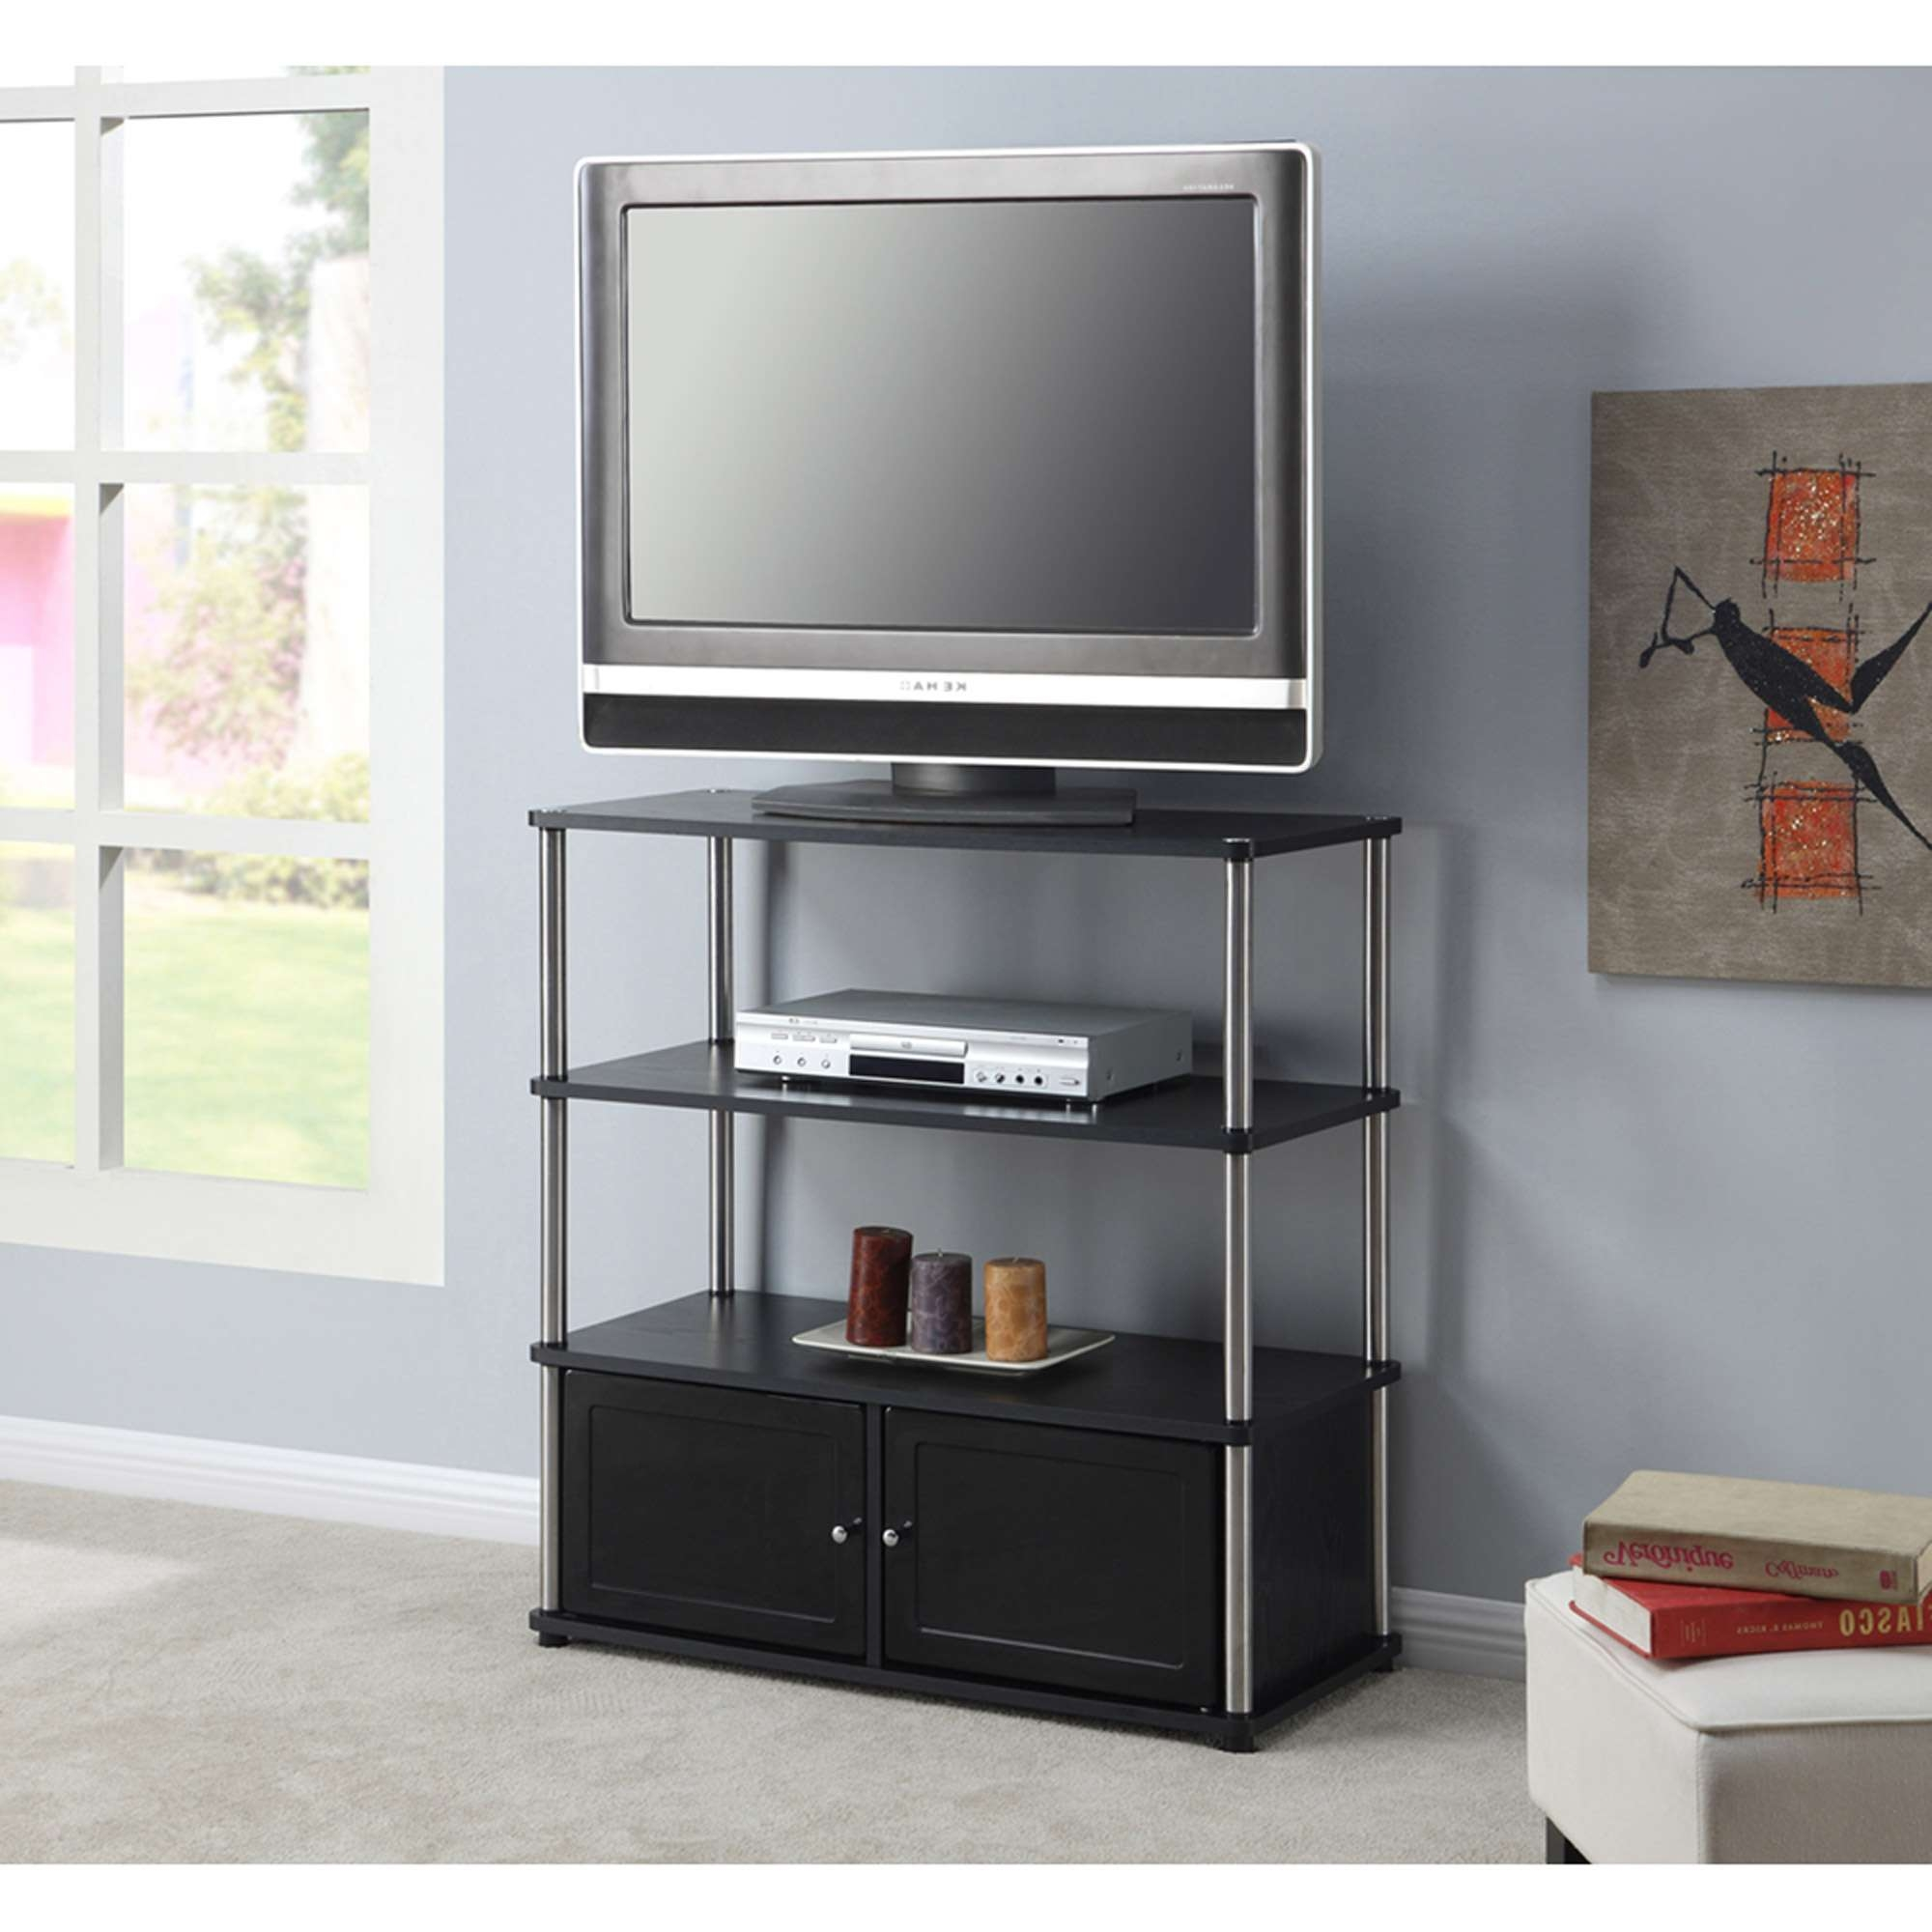 Tv Stands Inspiring Stand With Mount And Drawers Design Altra With Regard To Tall Skinny Tv Stands (View 9 of 15)